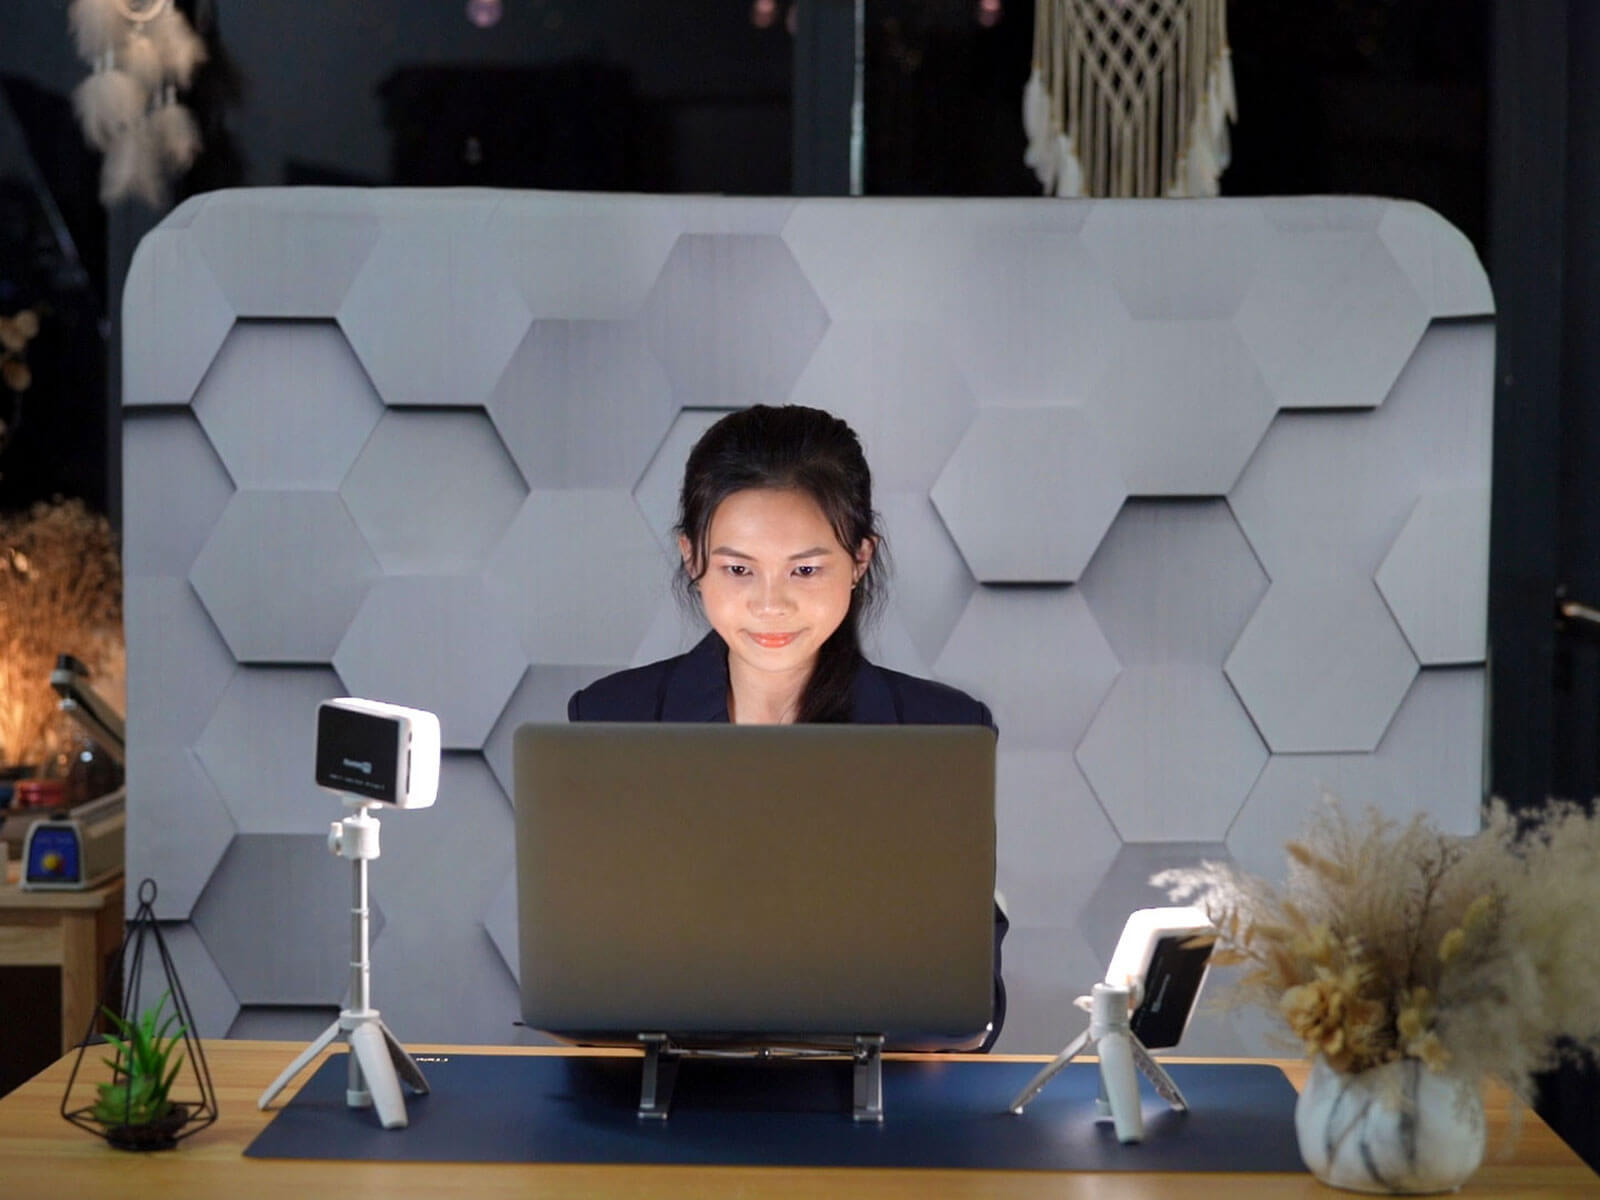 Woman using laptop and working from home.